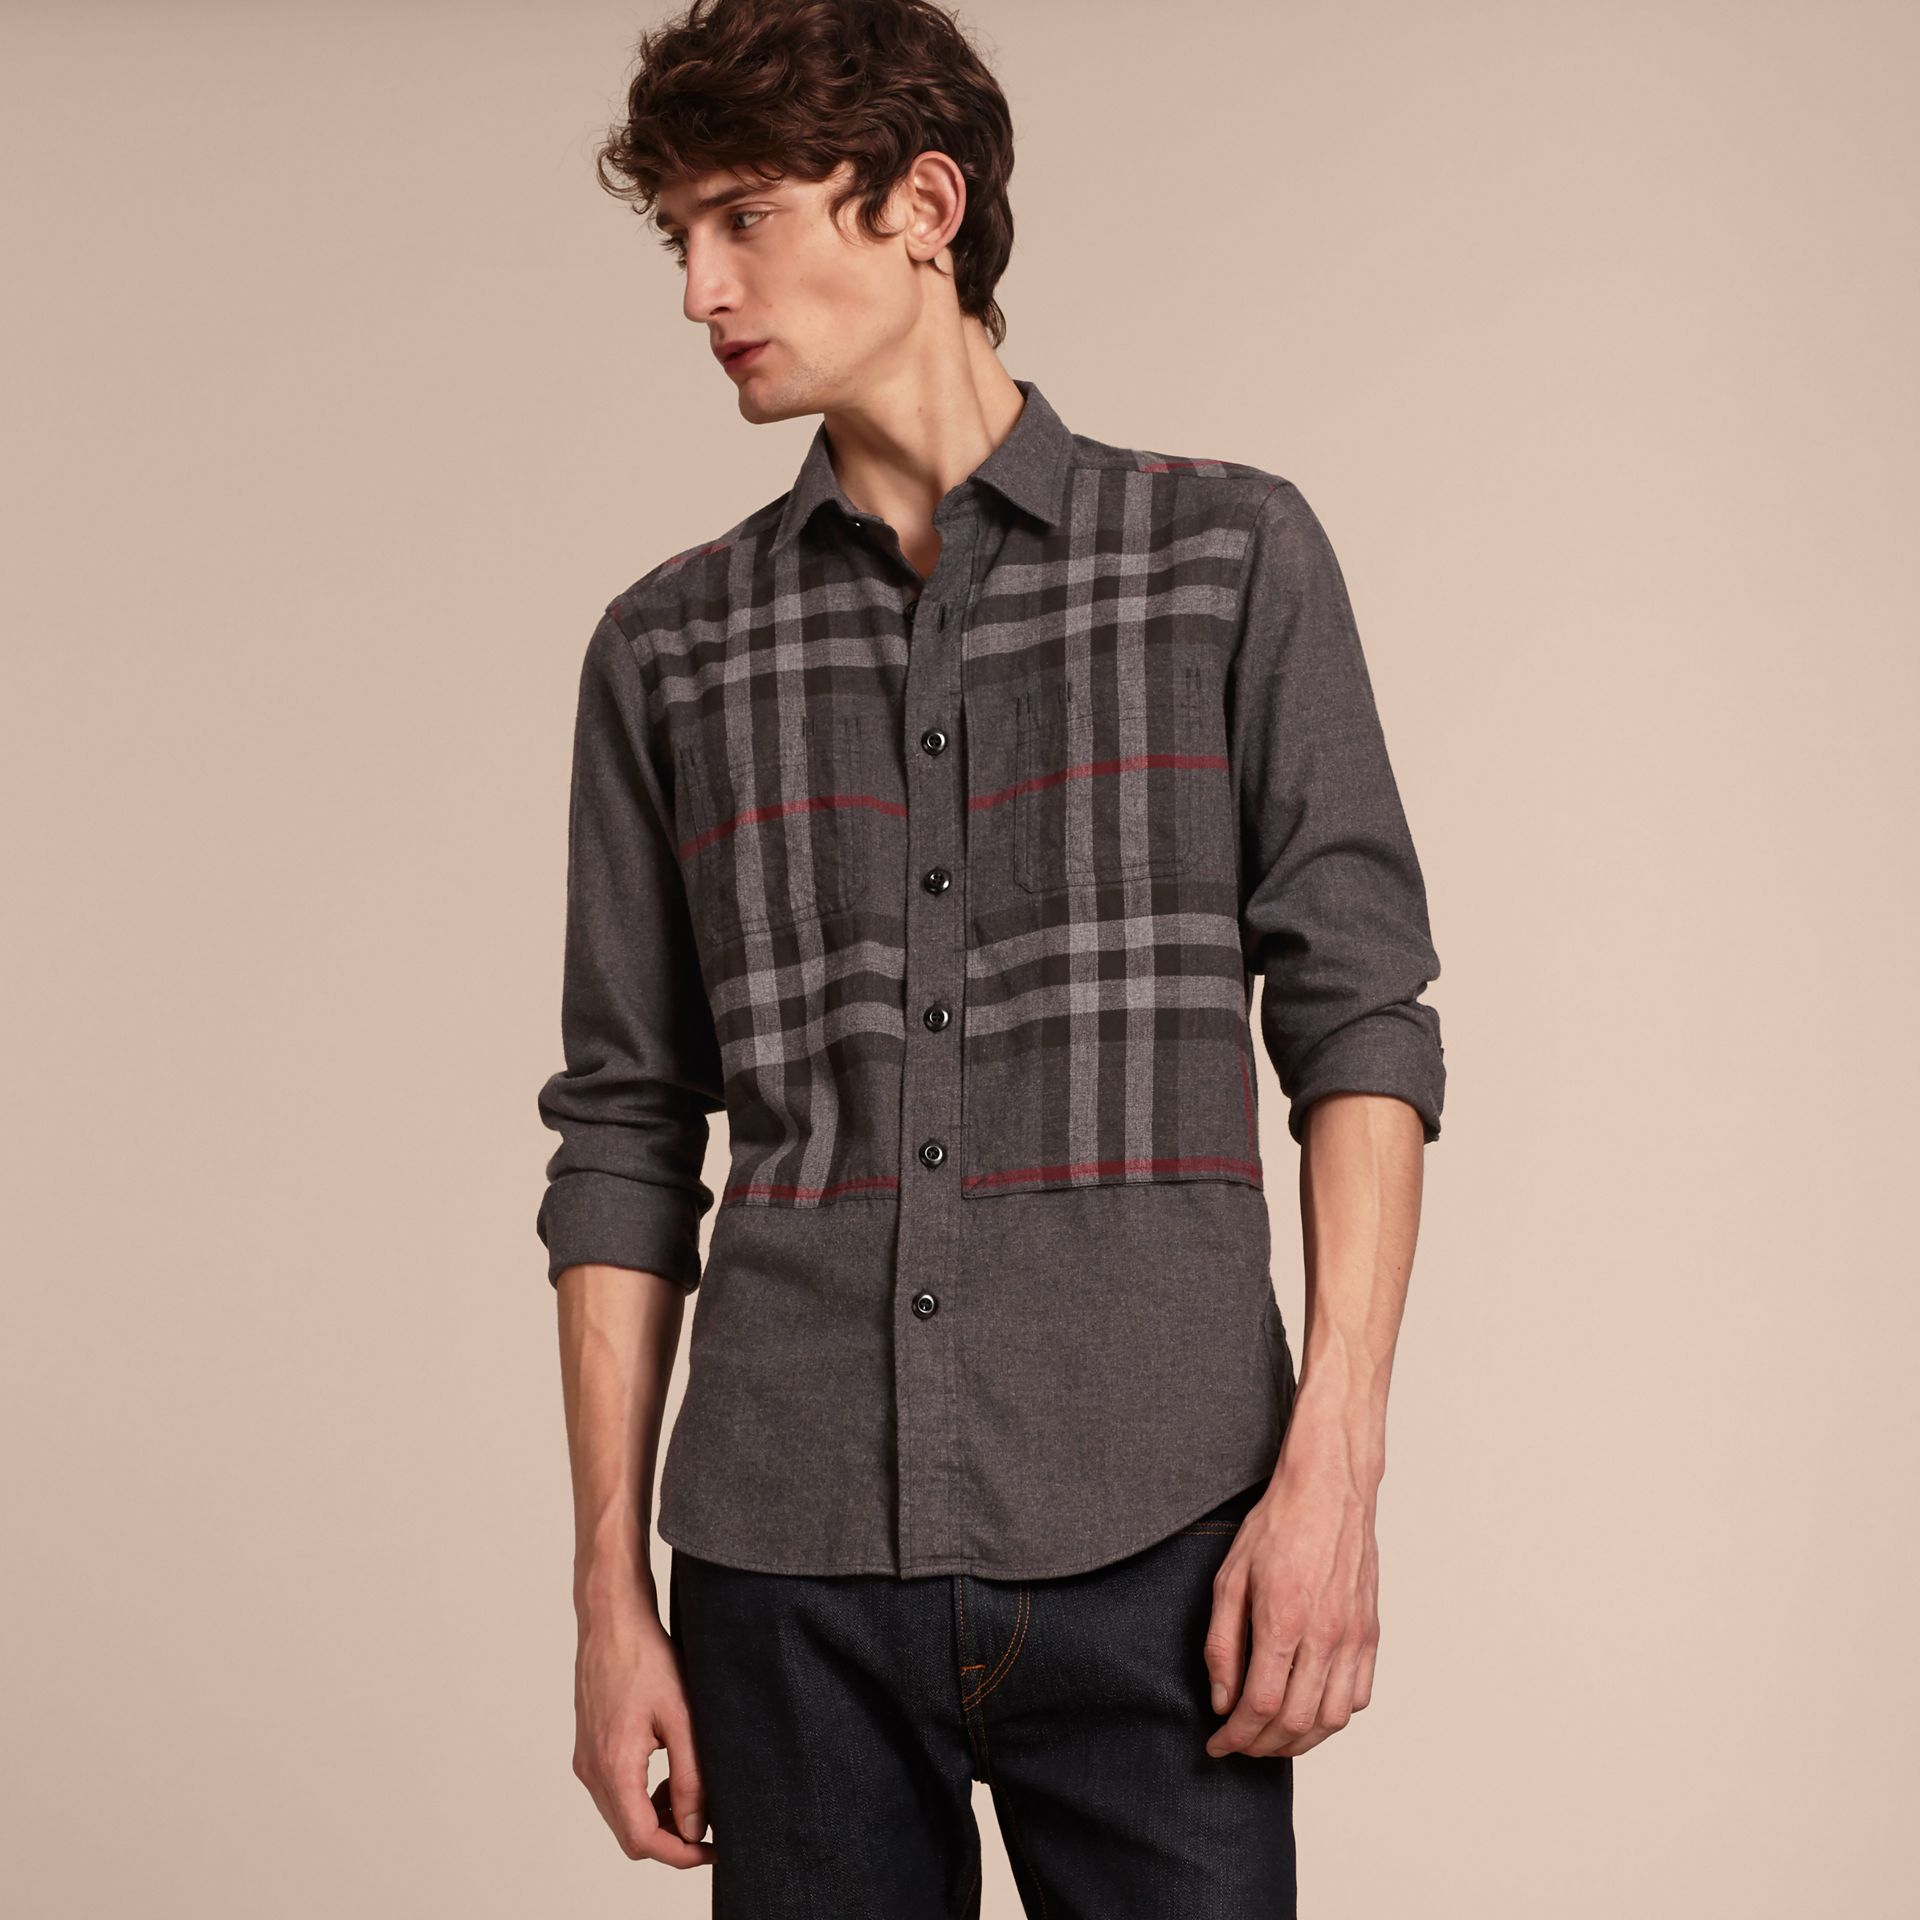 Charcoal melange Check Detail Cotton Flannel Shirt Charcoal Melange - gallery image 6